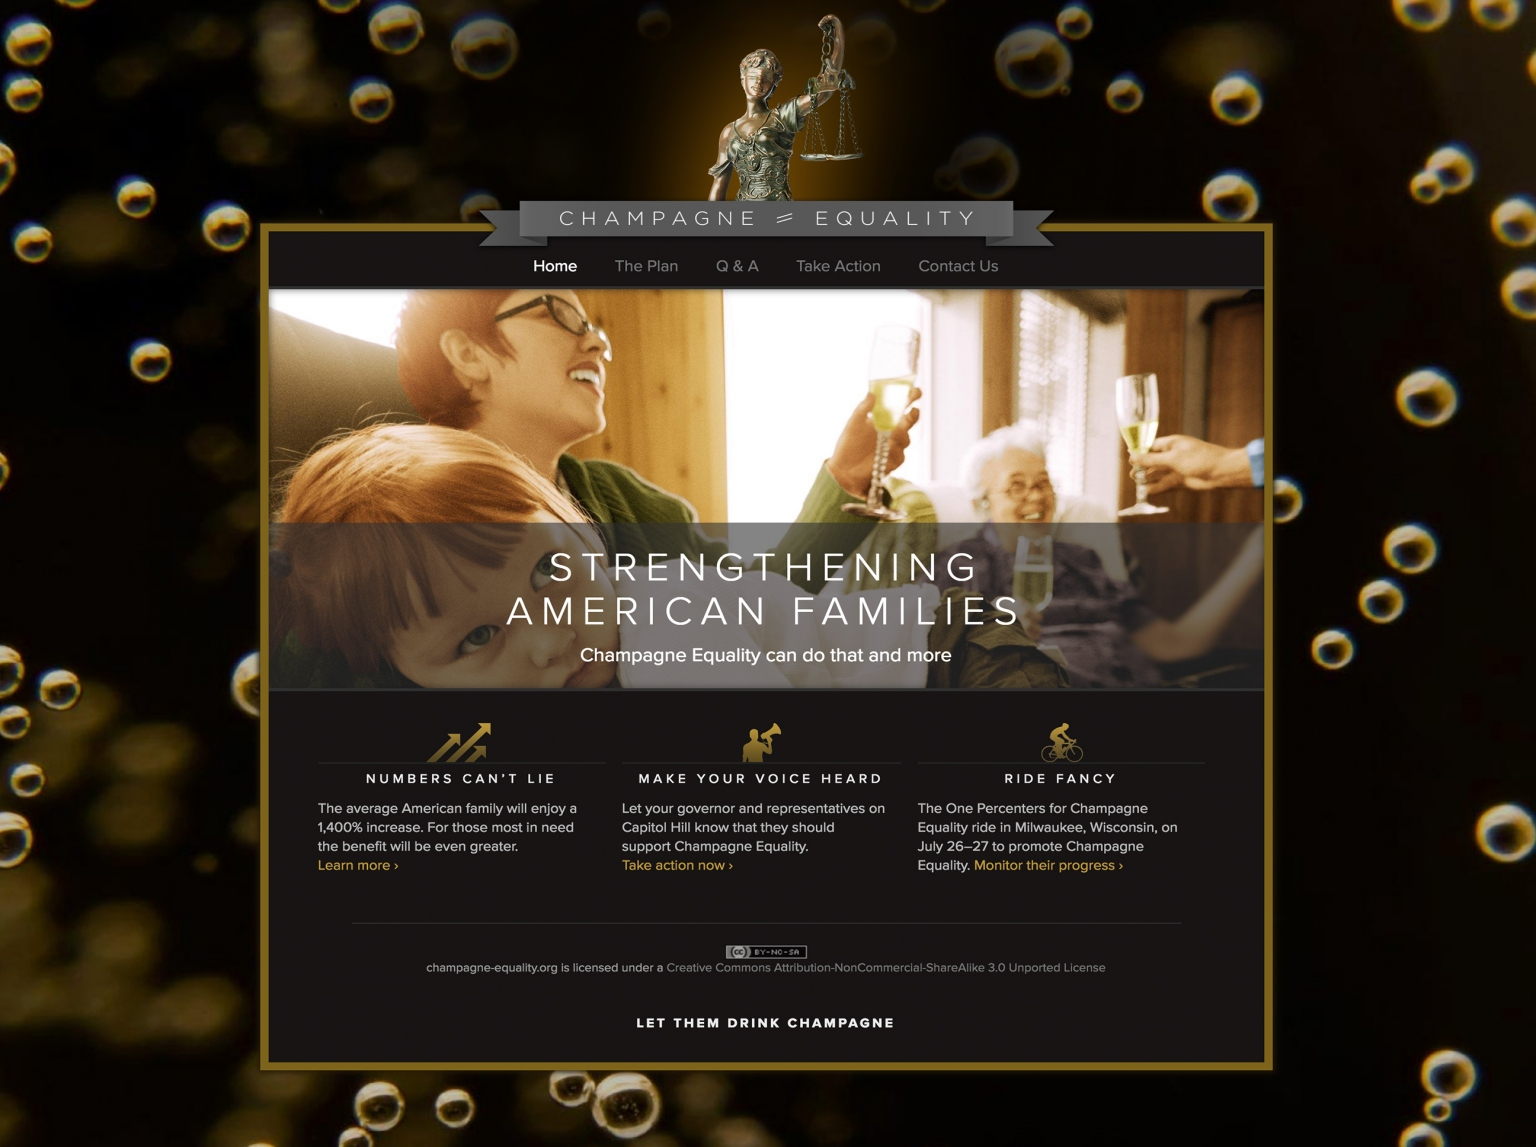 Champagne Equality web site home page